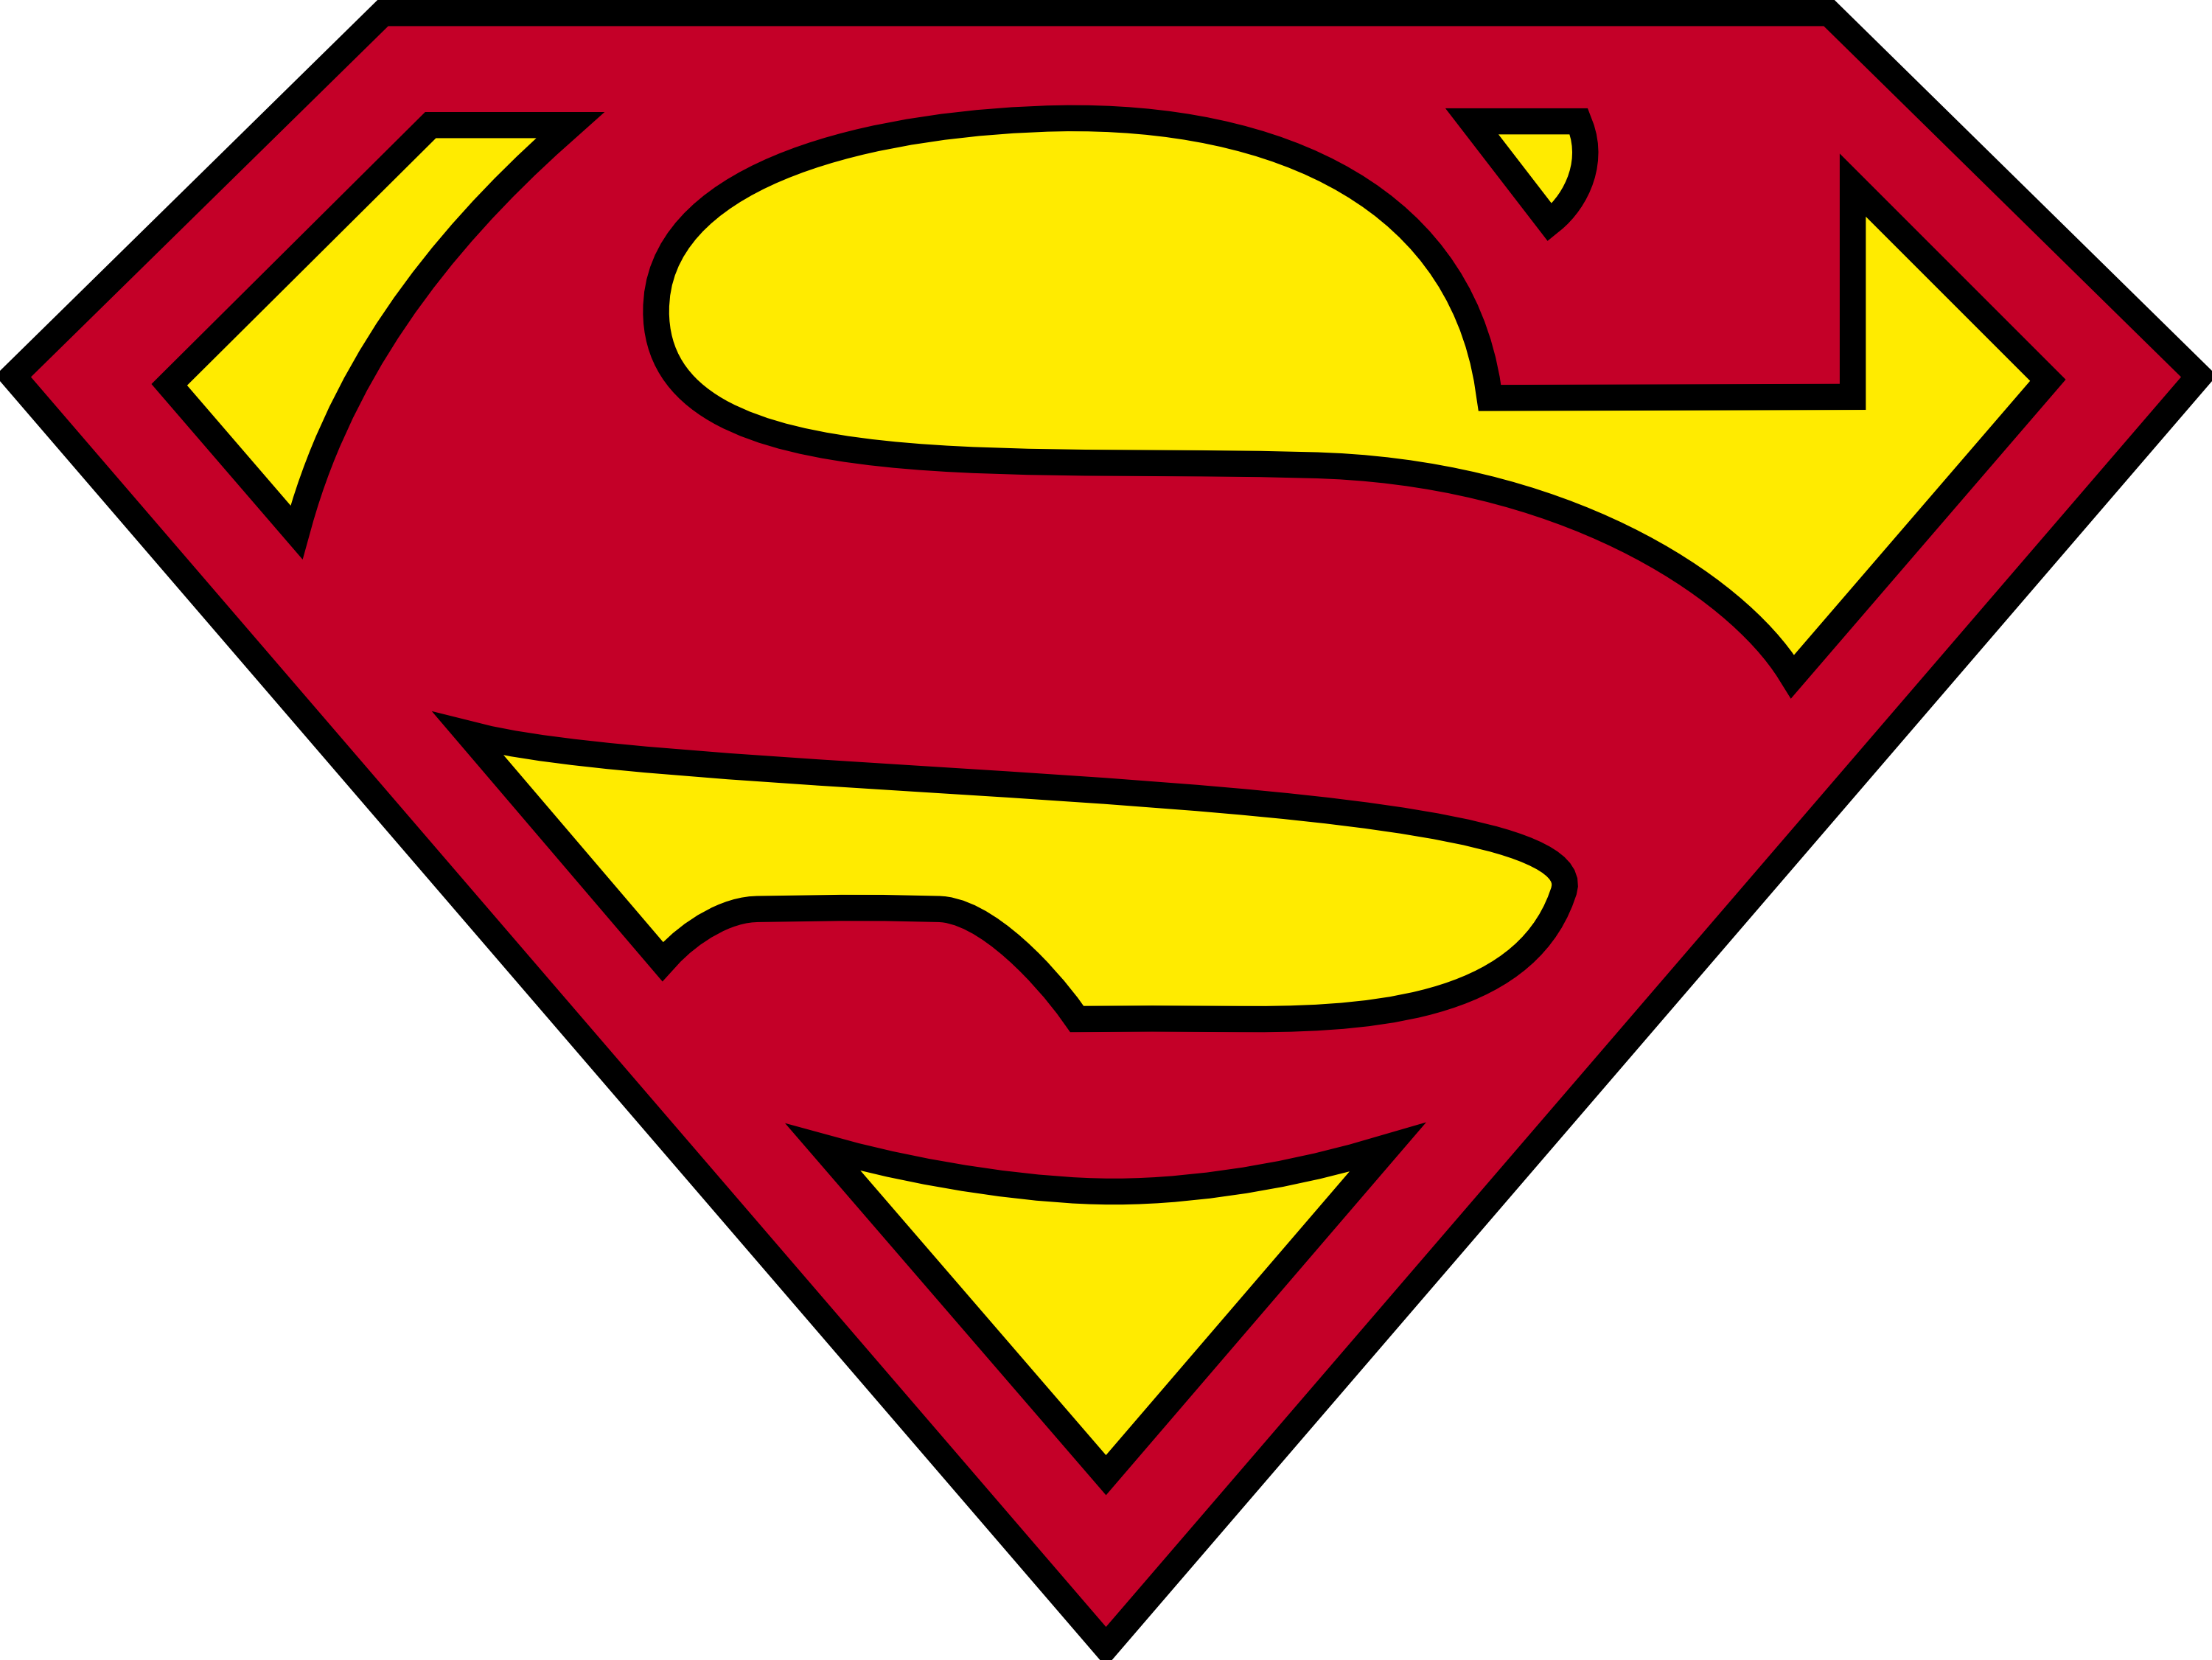 Download superman free png photo images and clipart freepngimg superman logo png png image voltagebd Image collections